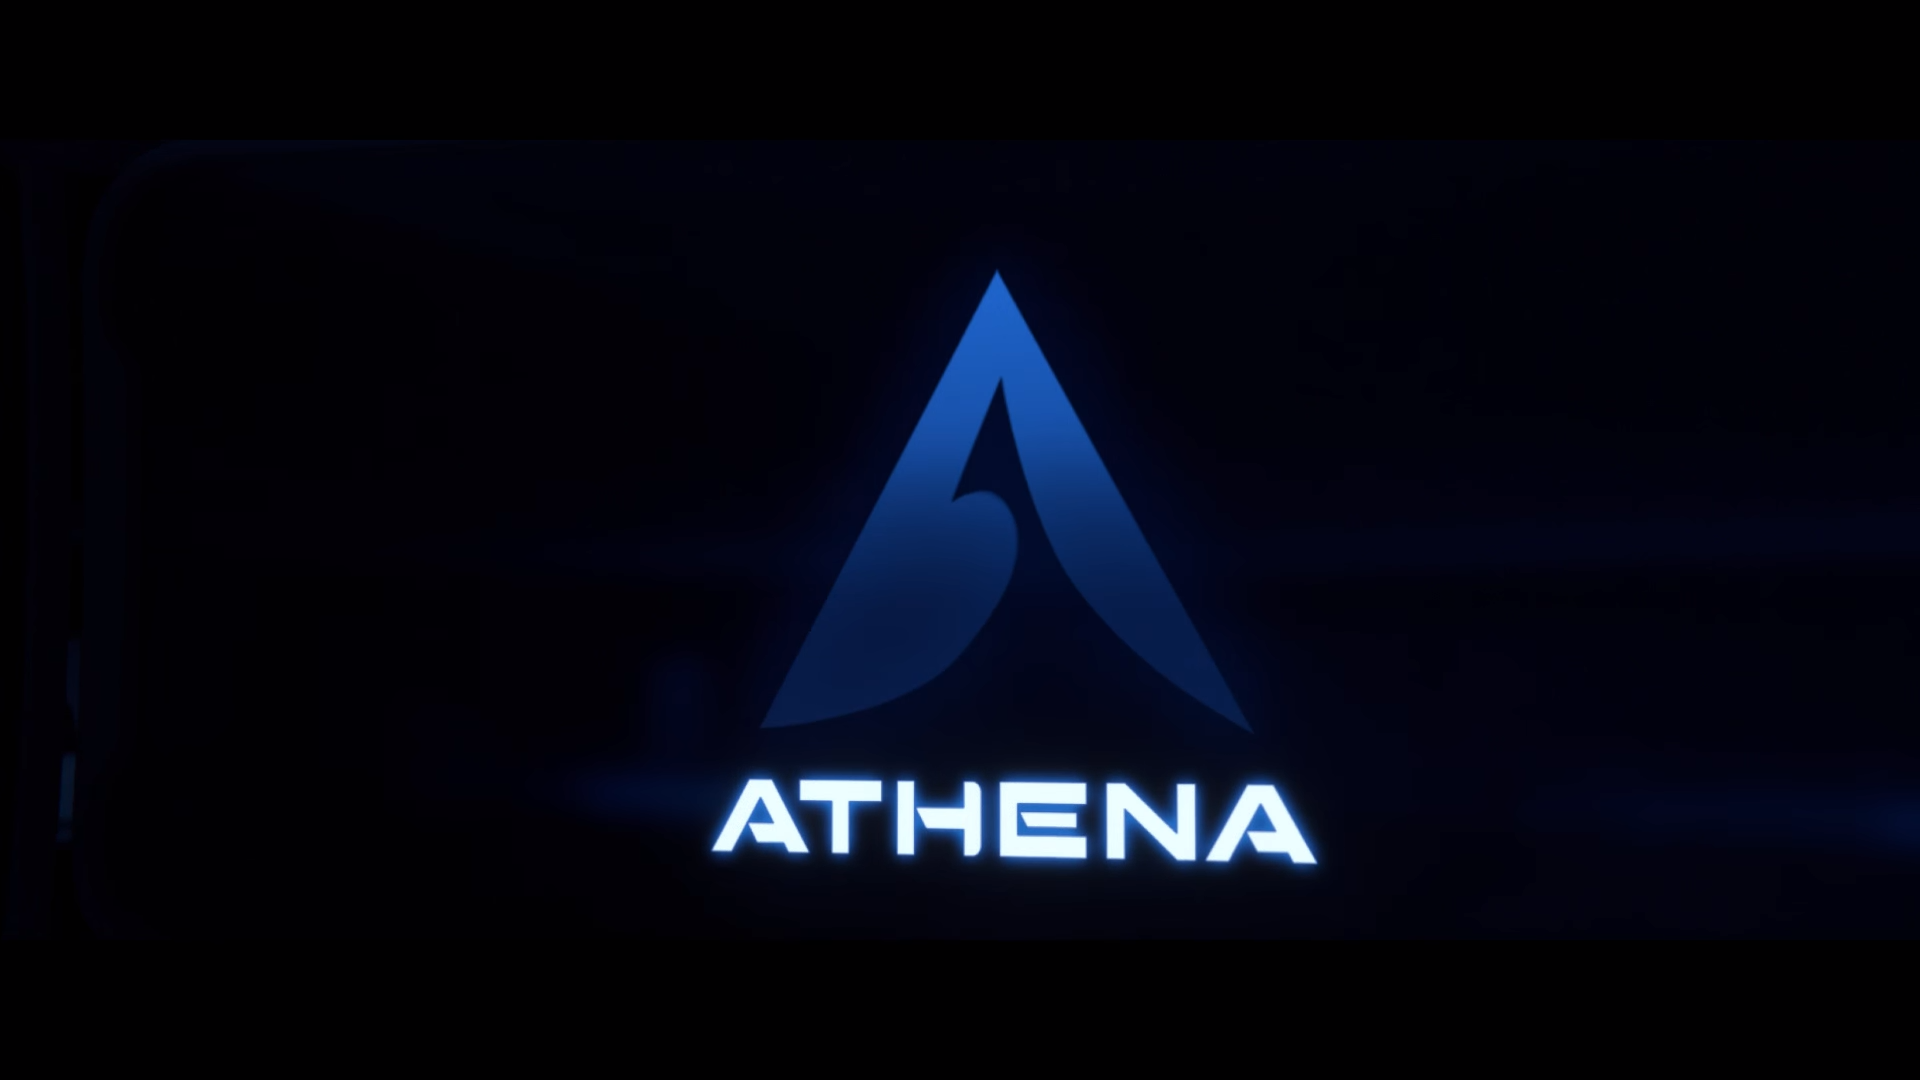 Sombra Logo Wallpapers High Quality Jllsly Overwatch Logos Overwatch New Hero